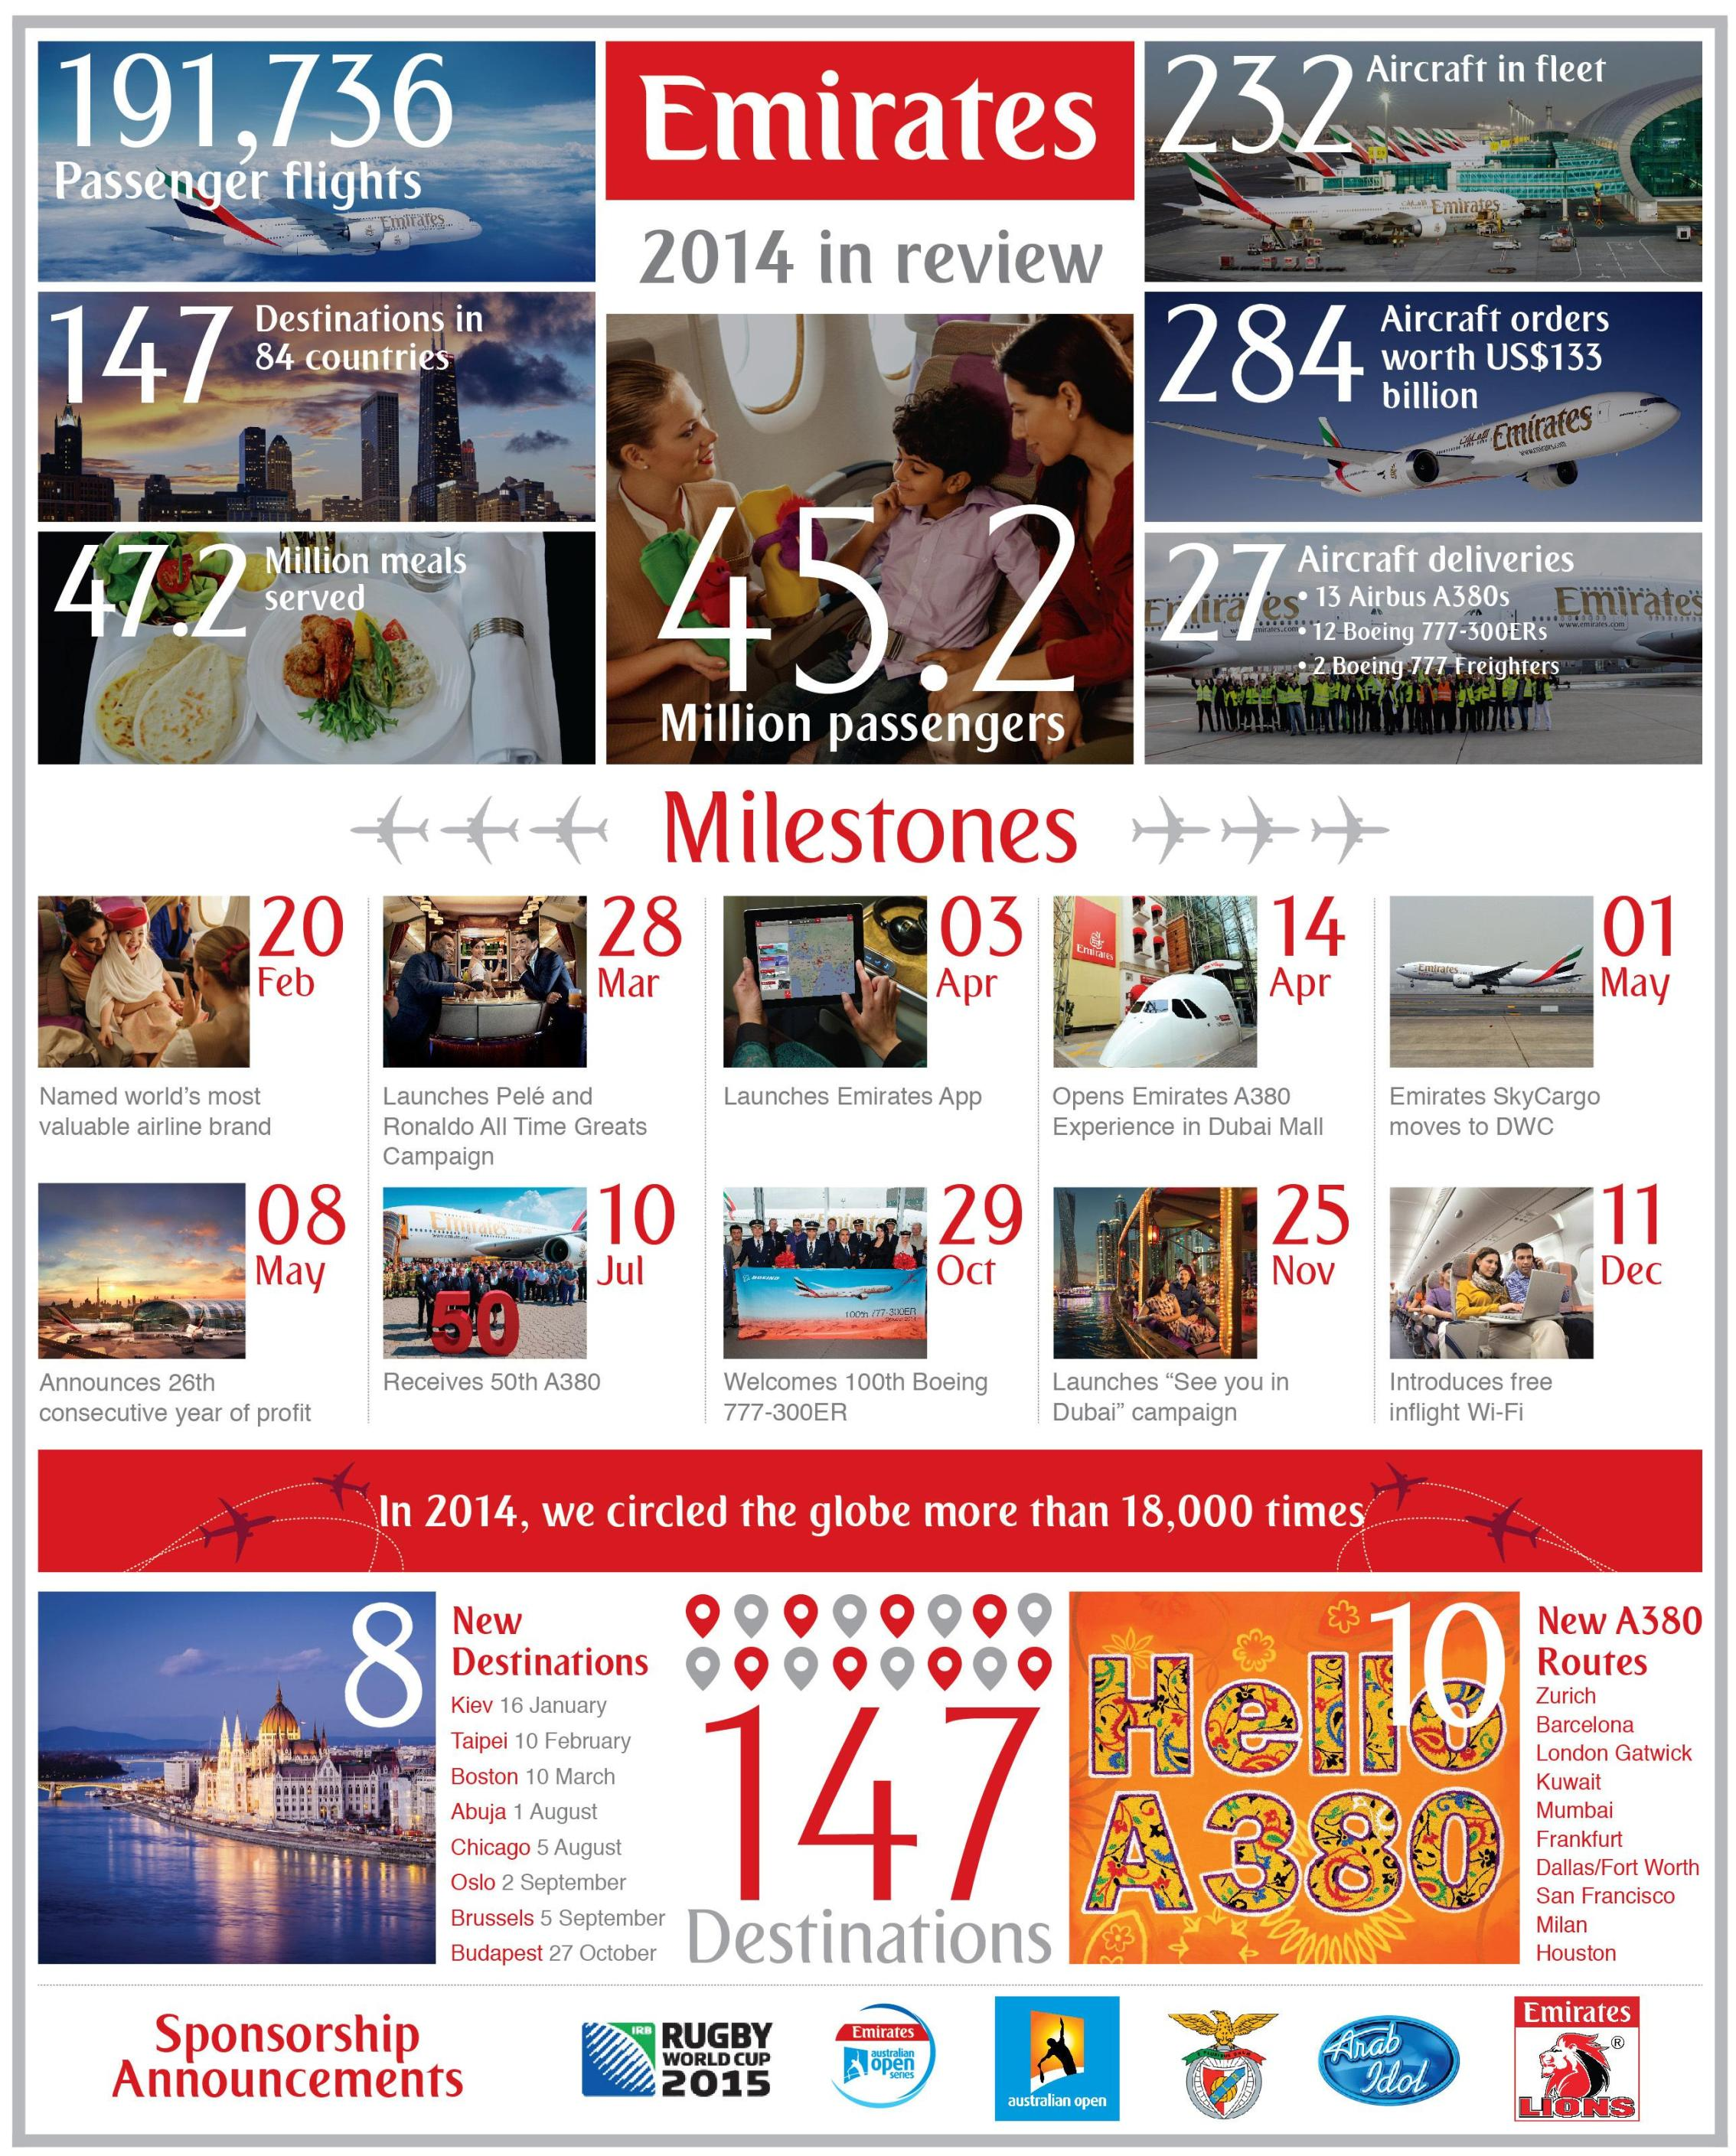 Emirates_review 2014_infographic